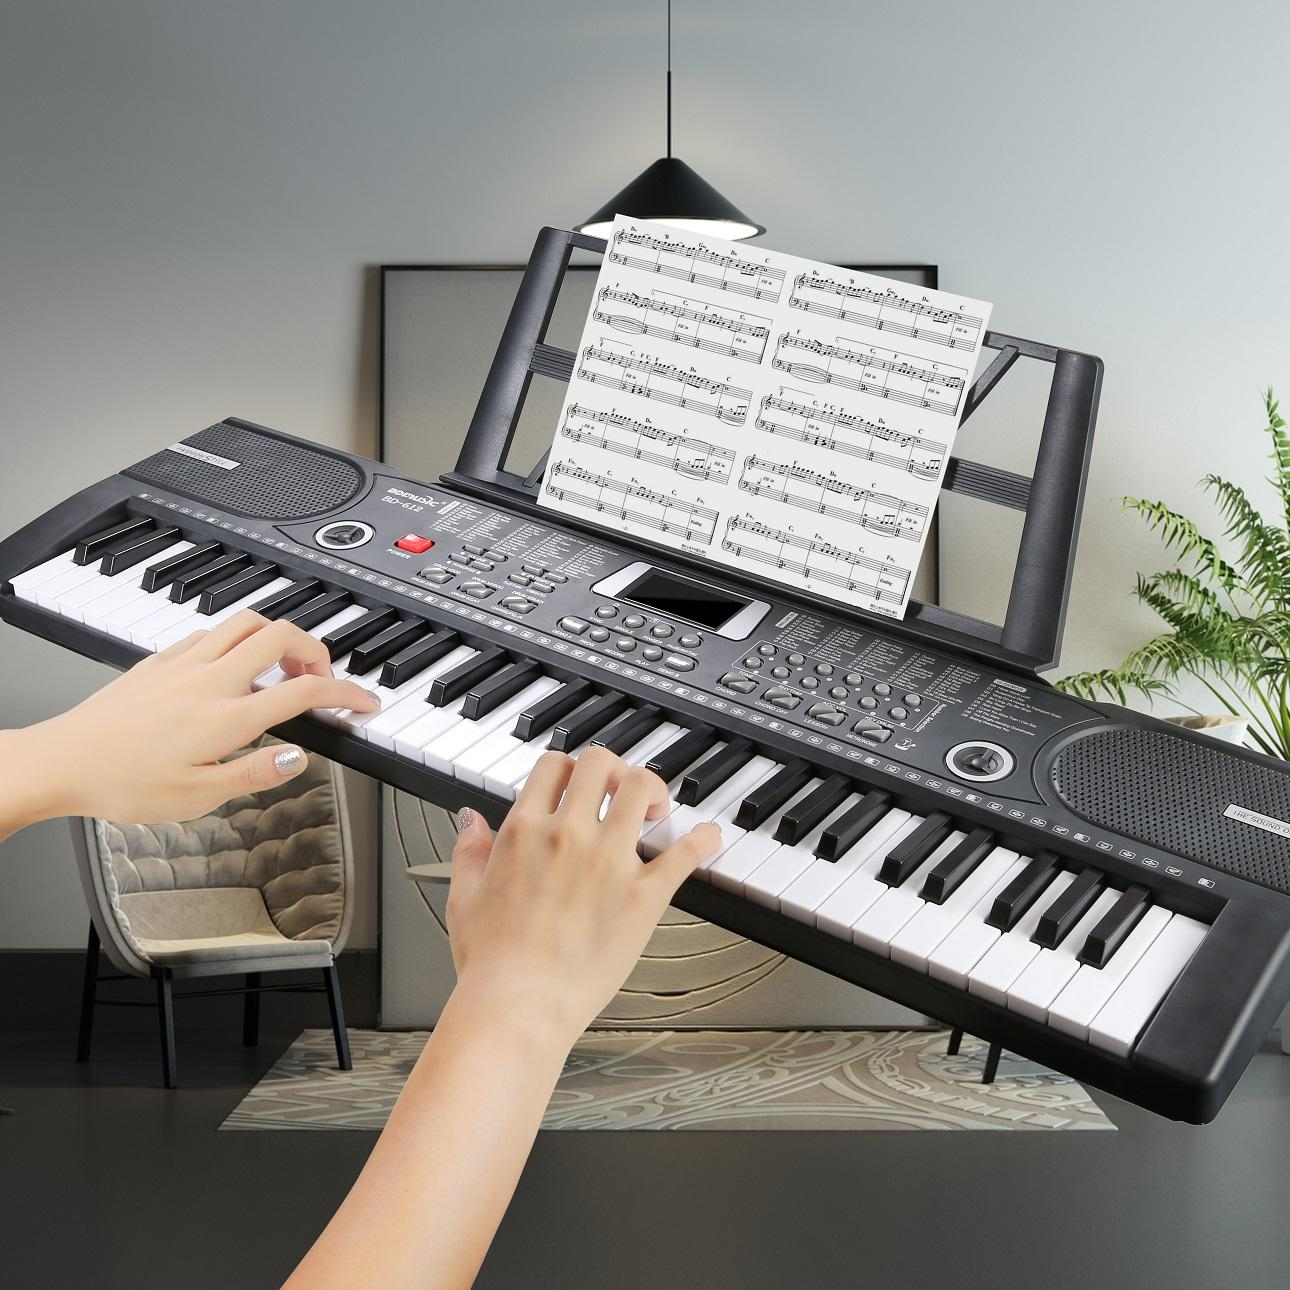 61 keyboard Presents for the children interactive toy stand piano musical keyboard toy electronic organ